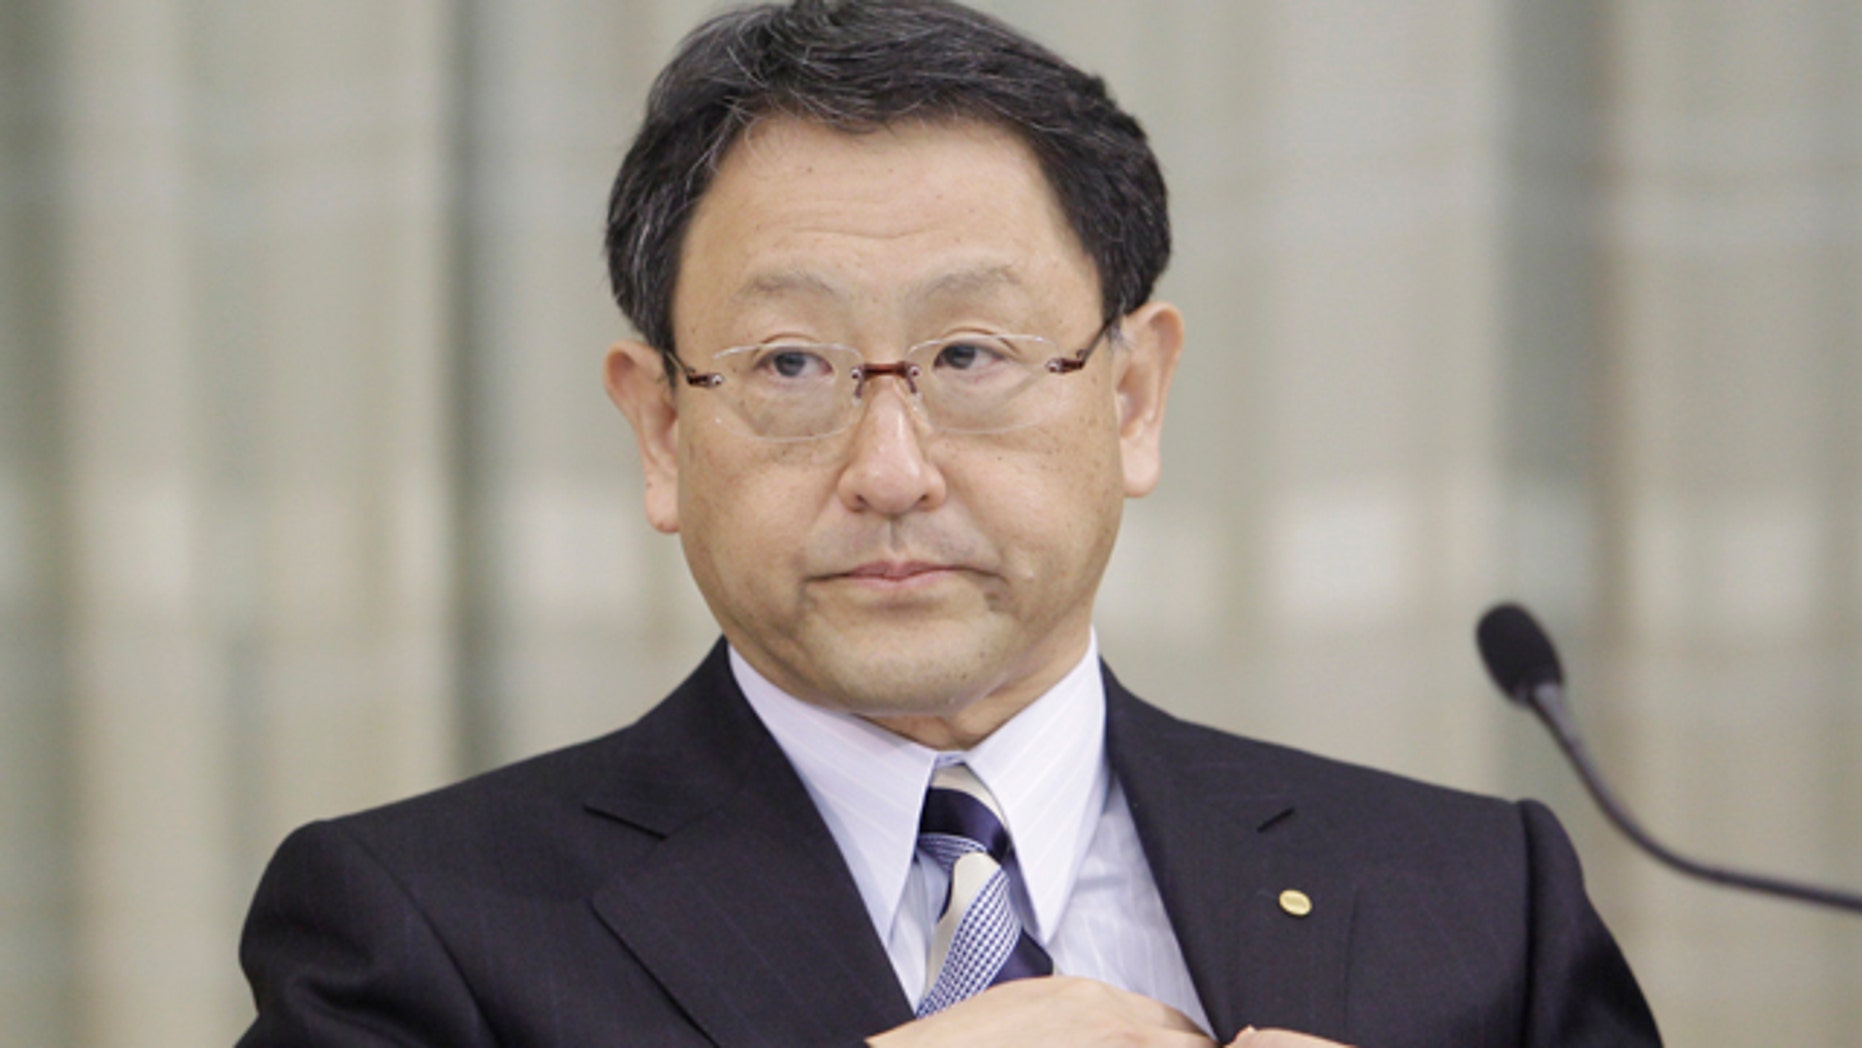 April 22: Toyota Motor Corp. President Akio Toyoda attends a press conference in Tokyo. Toyota said its global car production, disrupted by parts shortages from Japan's earthquake and tsunami, won't return to normal until November or December -- threatening its spot as the world's top-selling automaker. (AP)